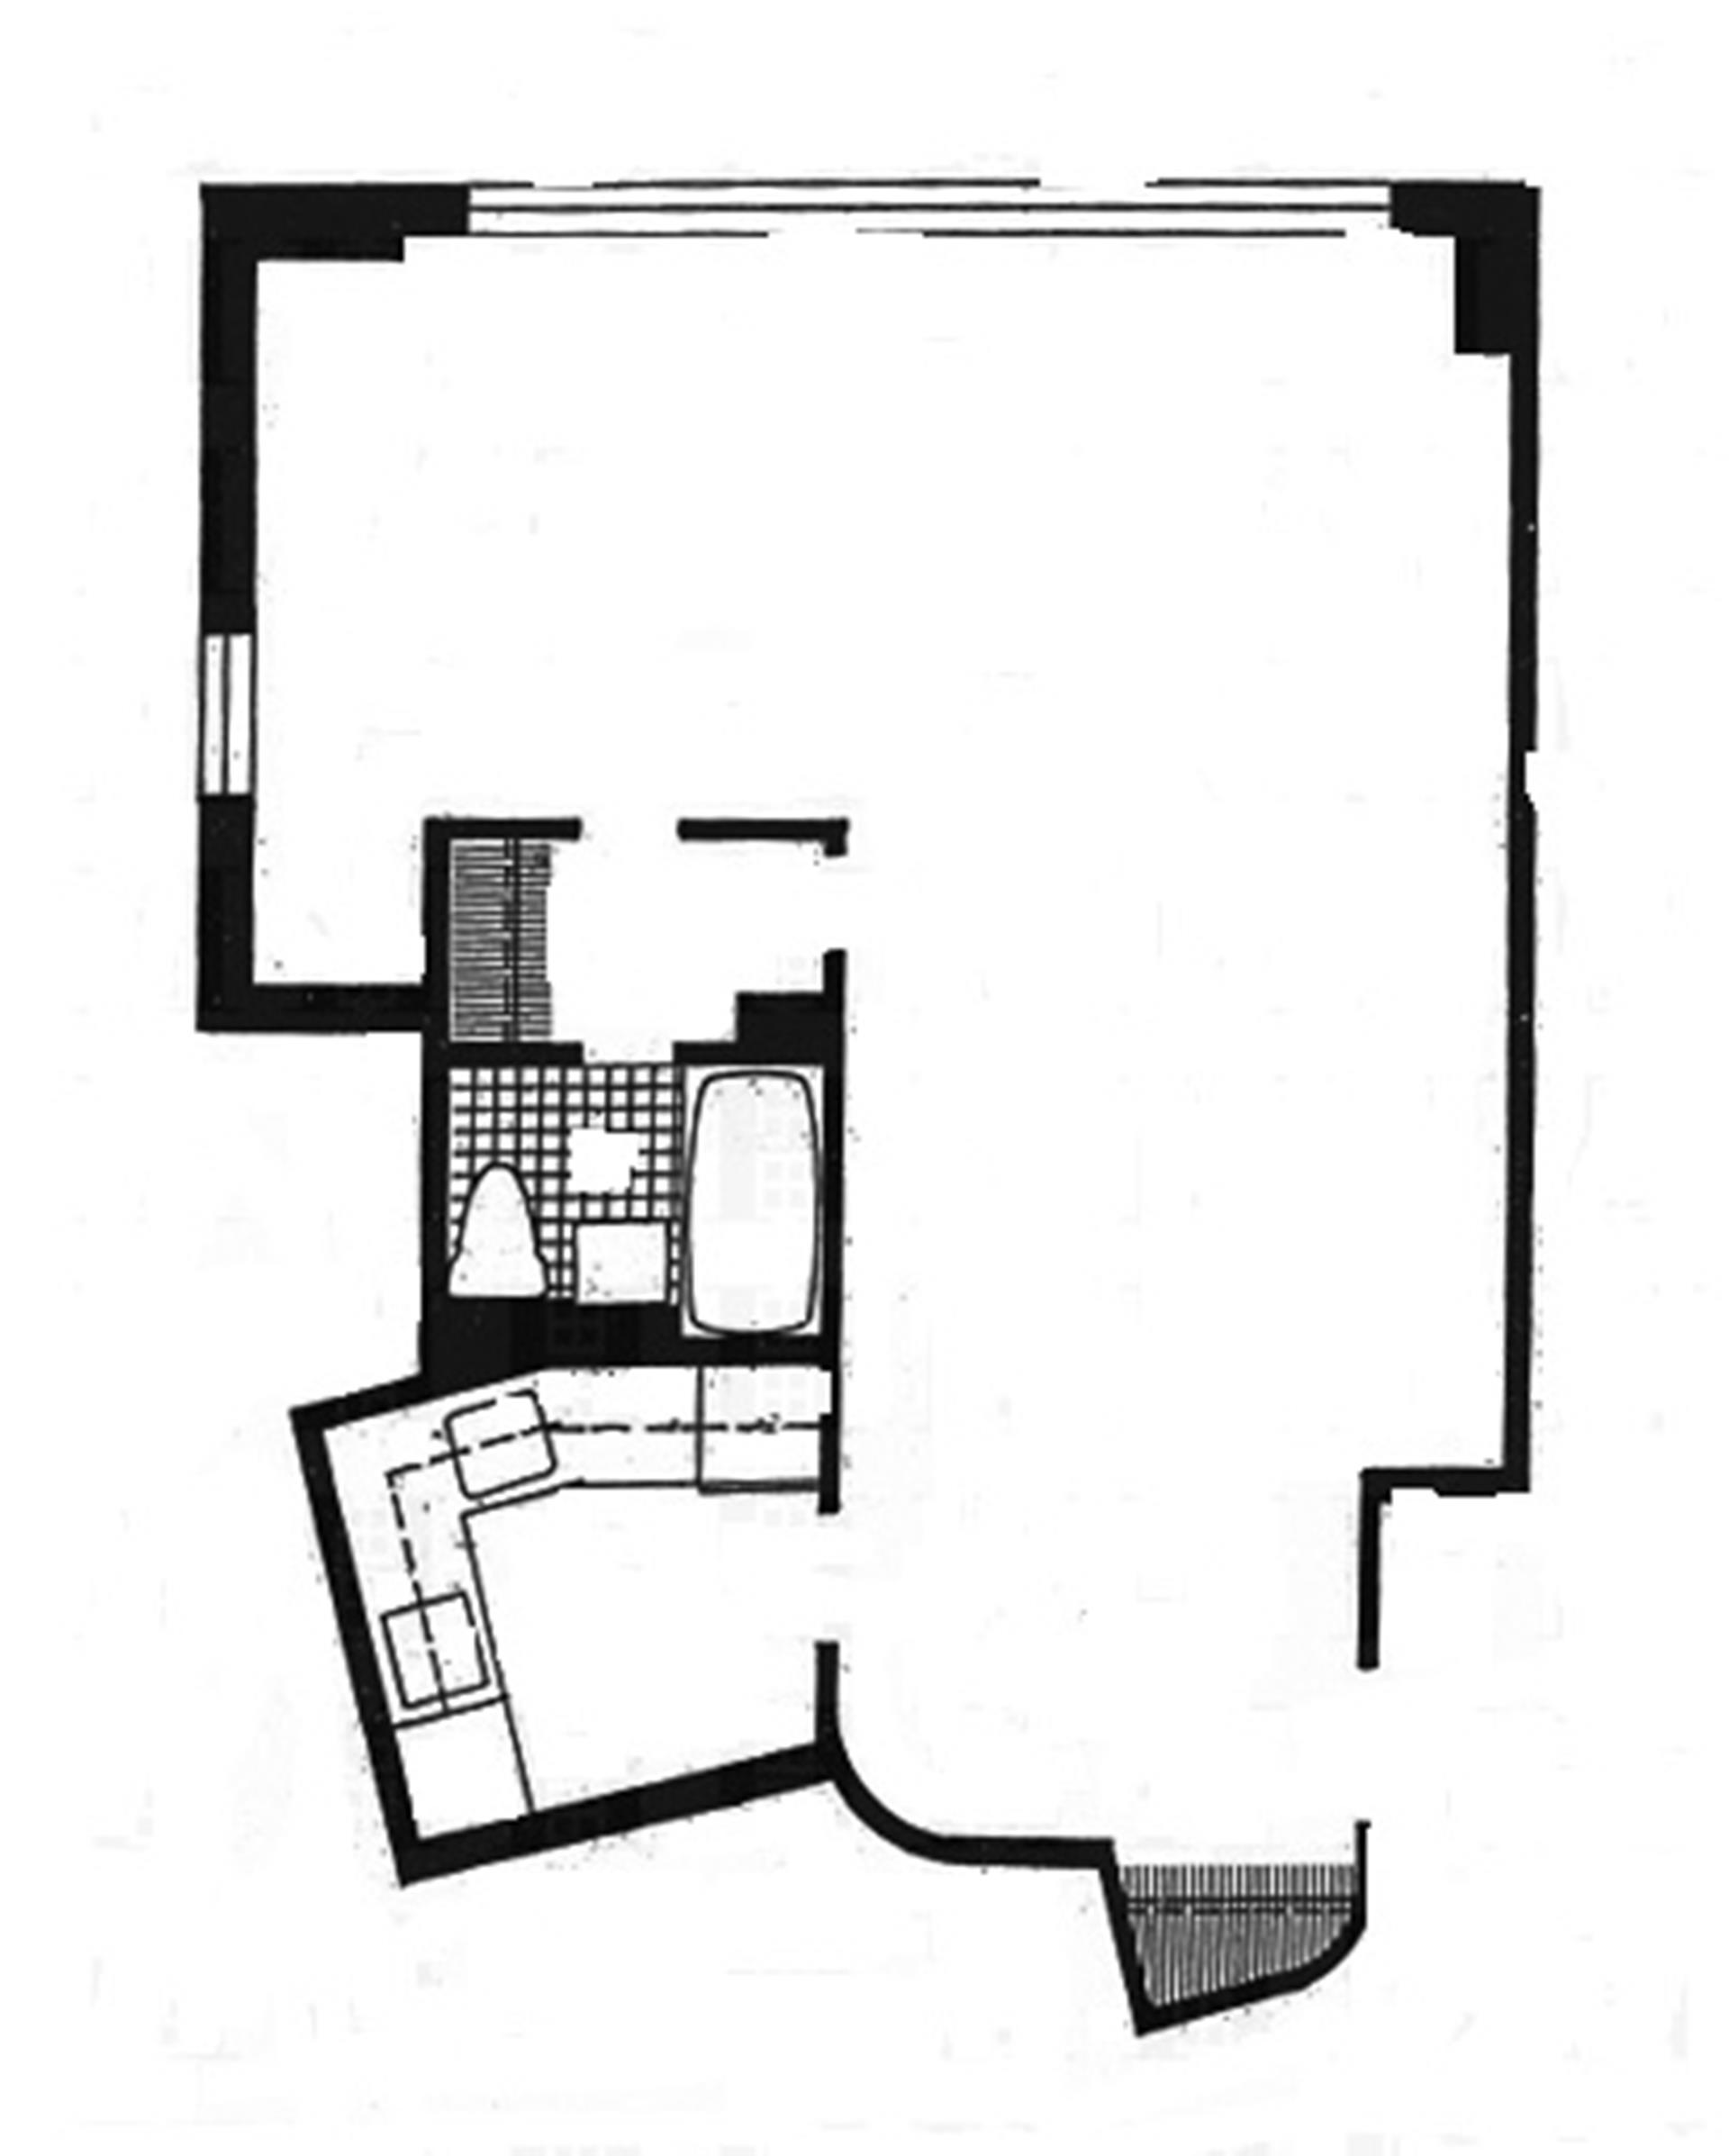 Floor plan of 1020 Grand Concourse, 9M - Highbridge, New York